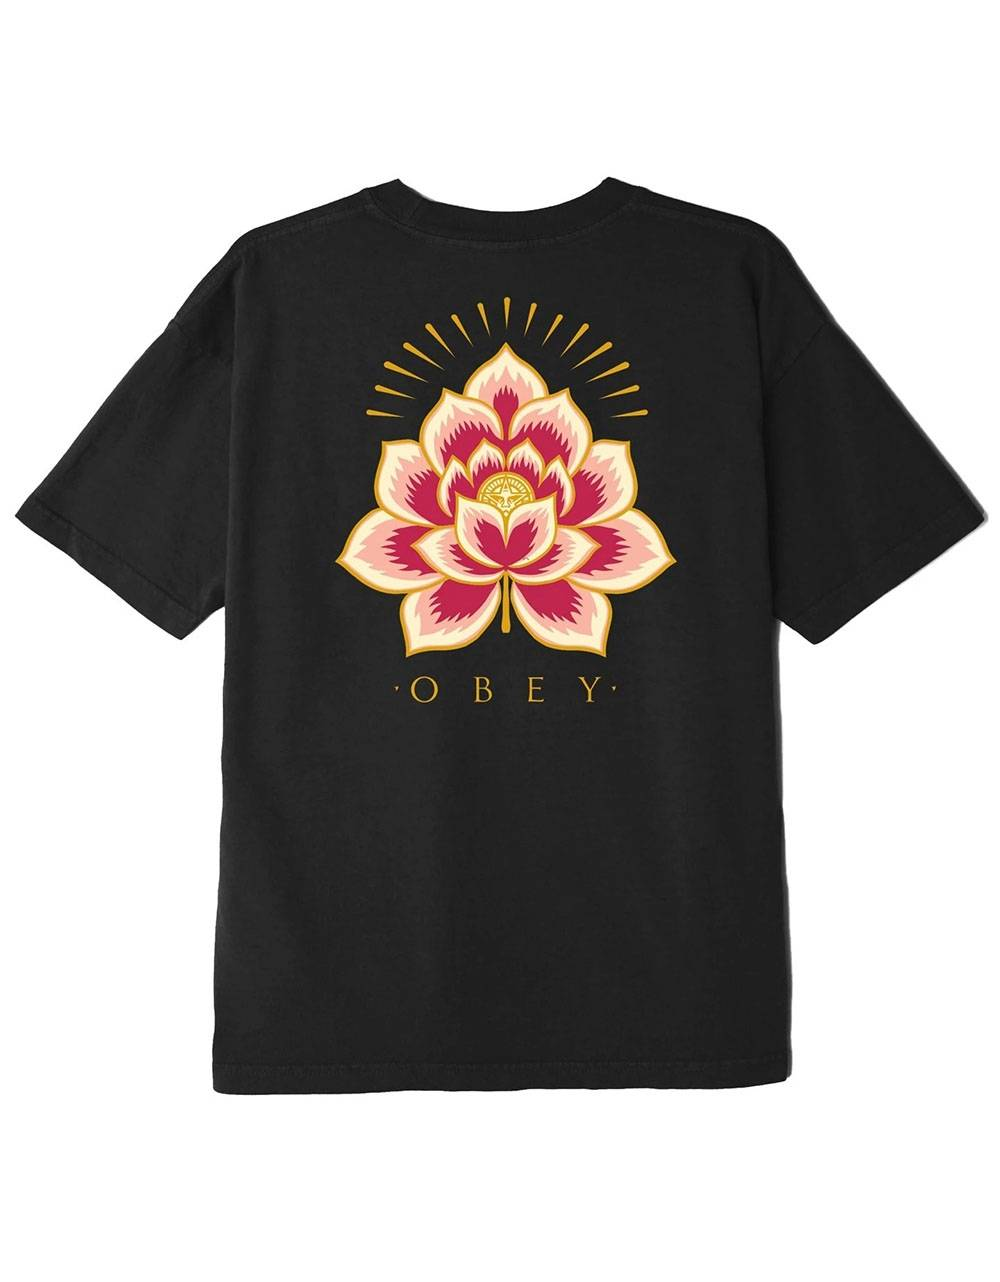 Obey Woman Radiant lotus classic tee - black obey T-shirt 45,00€